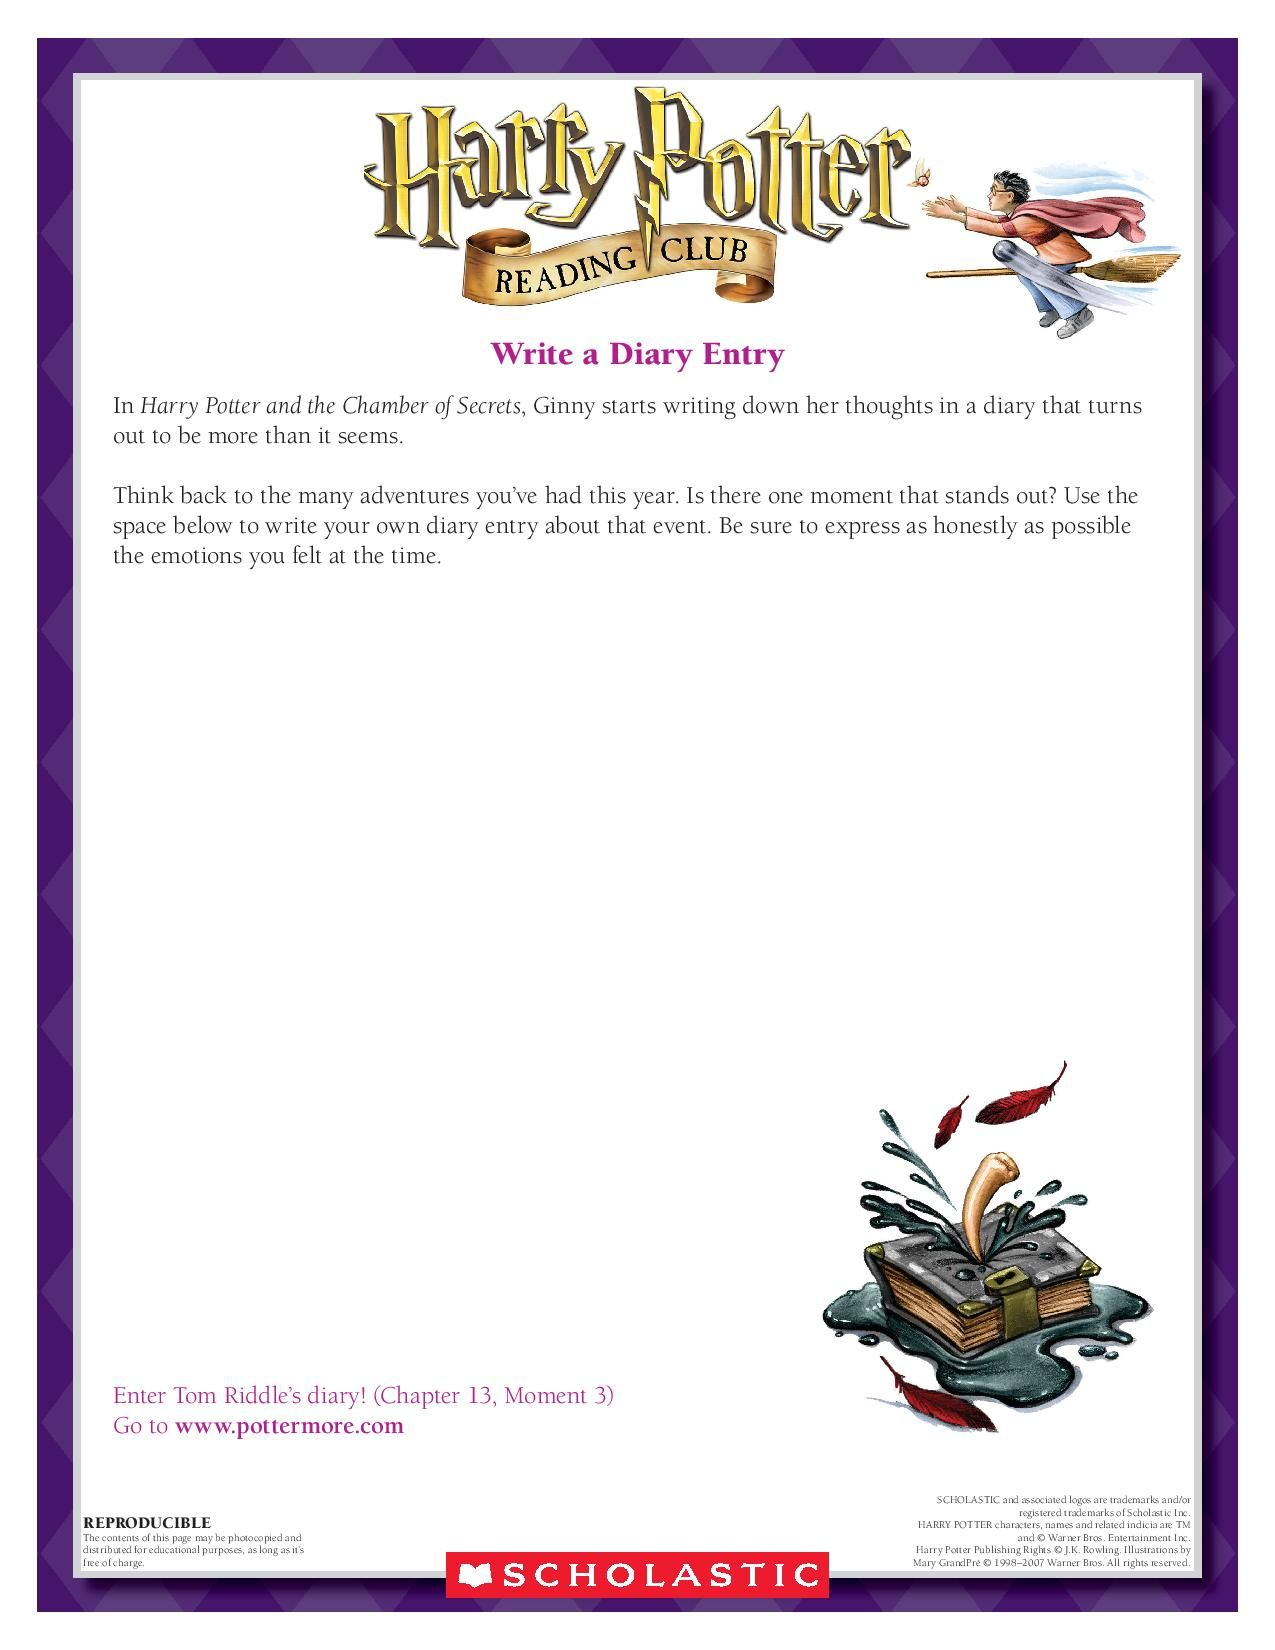 Creative Writing Write Your Own Diary Entry Download By Clicking The Image Above For More